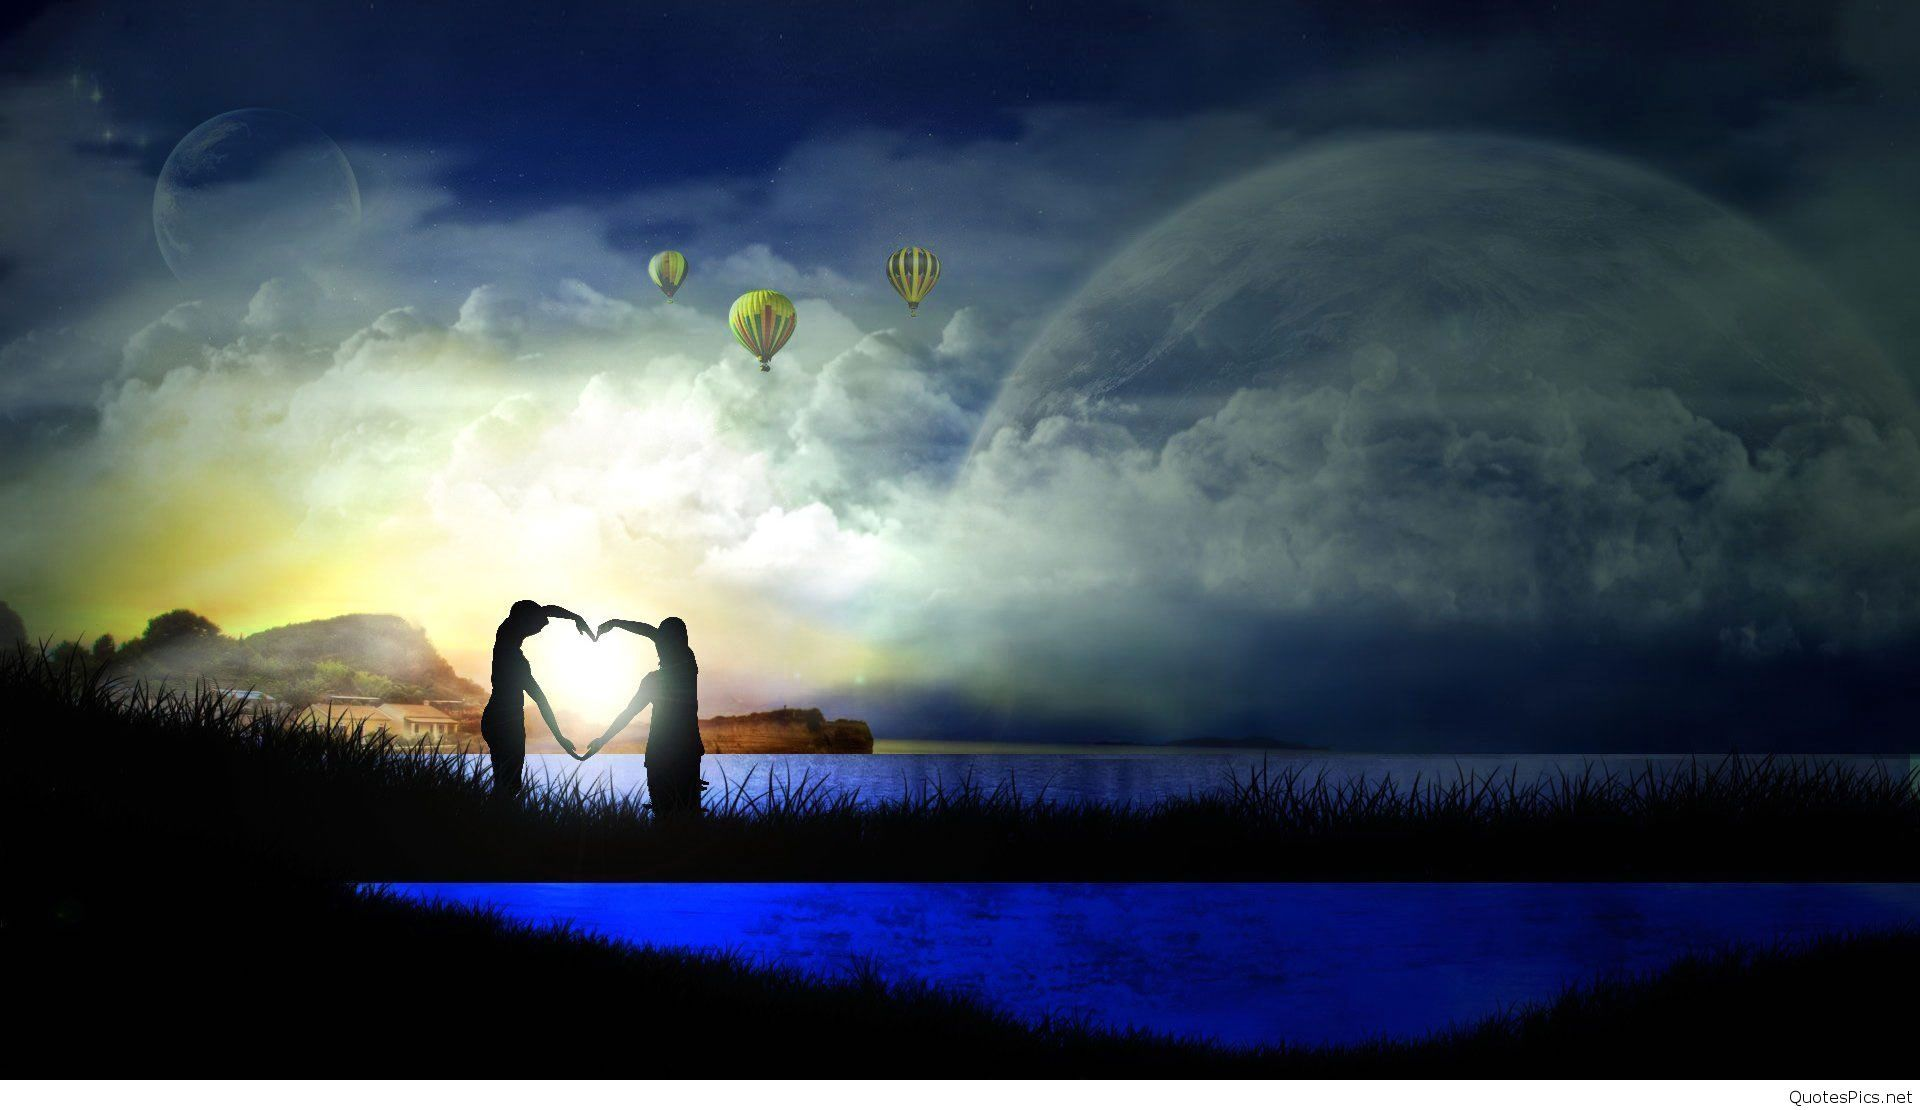 Fantasy couple love animated full screen high resolution - Couple wallpaper download ...